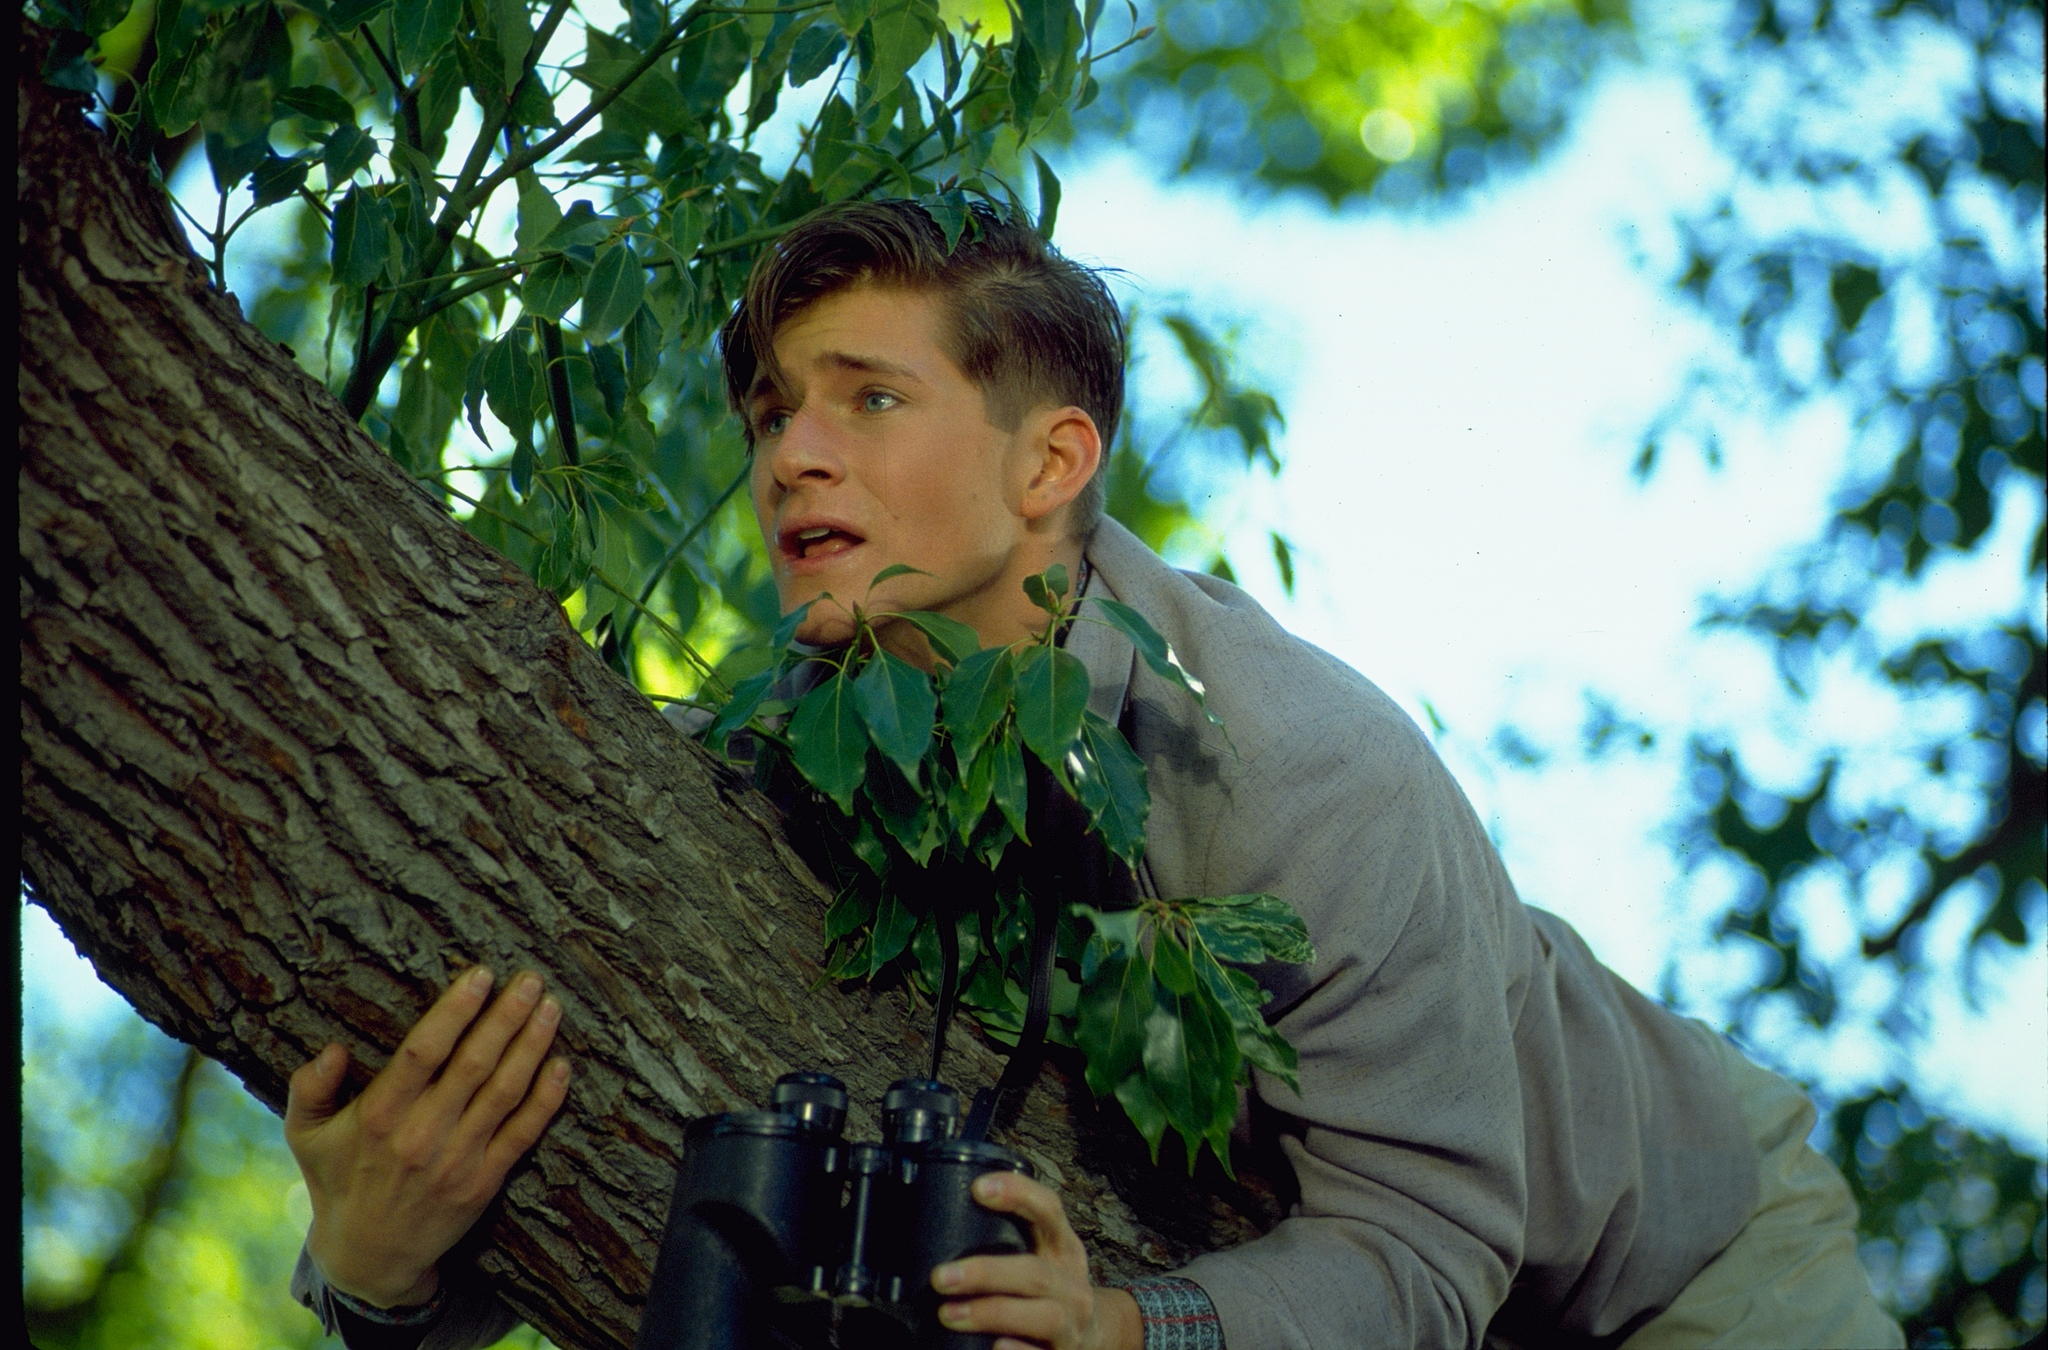 Crispin Glover in Back to the Future (1985)